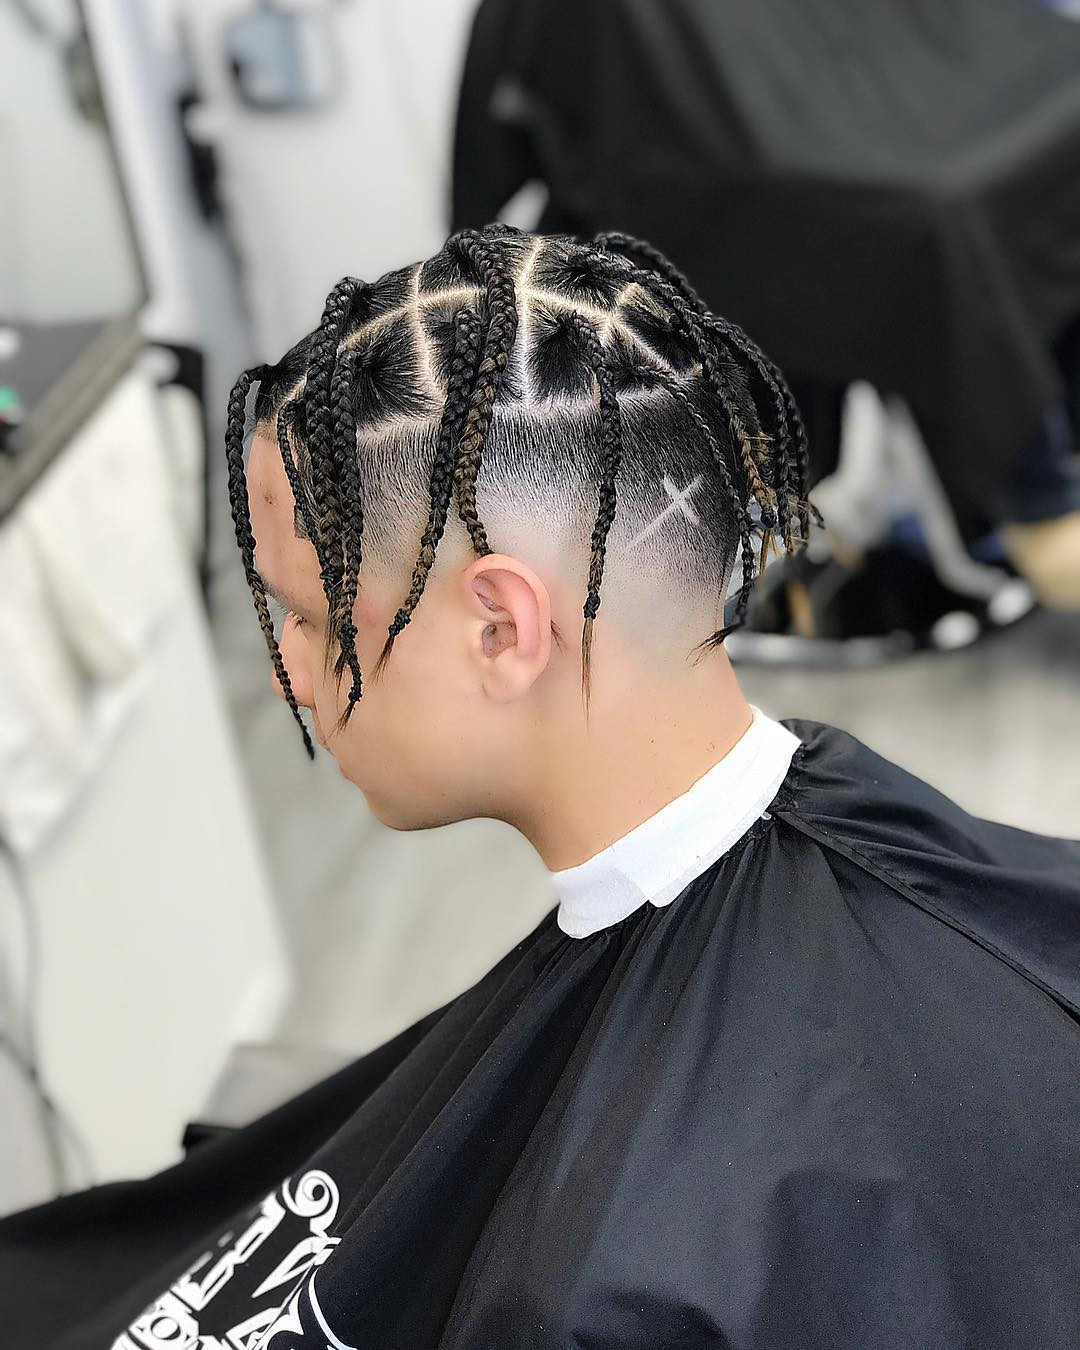 Male Braids Hairstyles  16 Best Braid Styles For Men In 2018 Tips & Tricks To